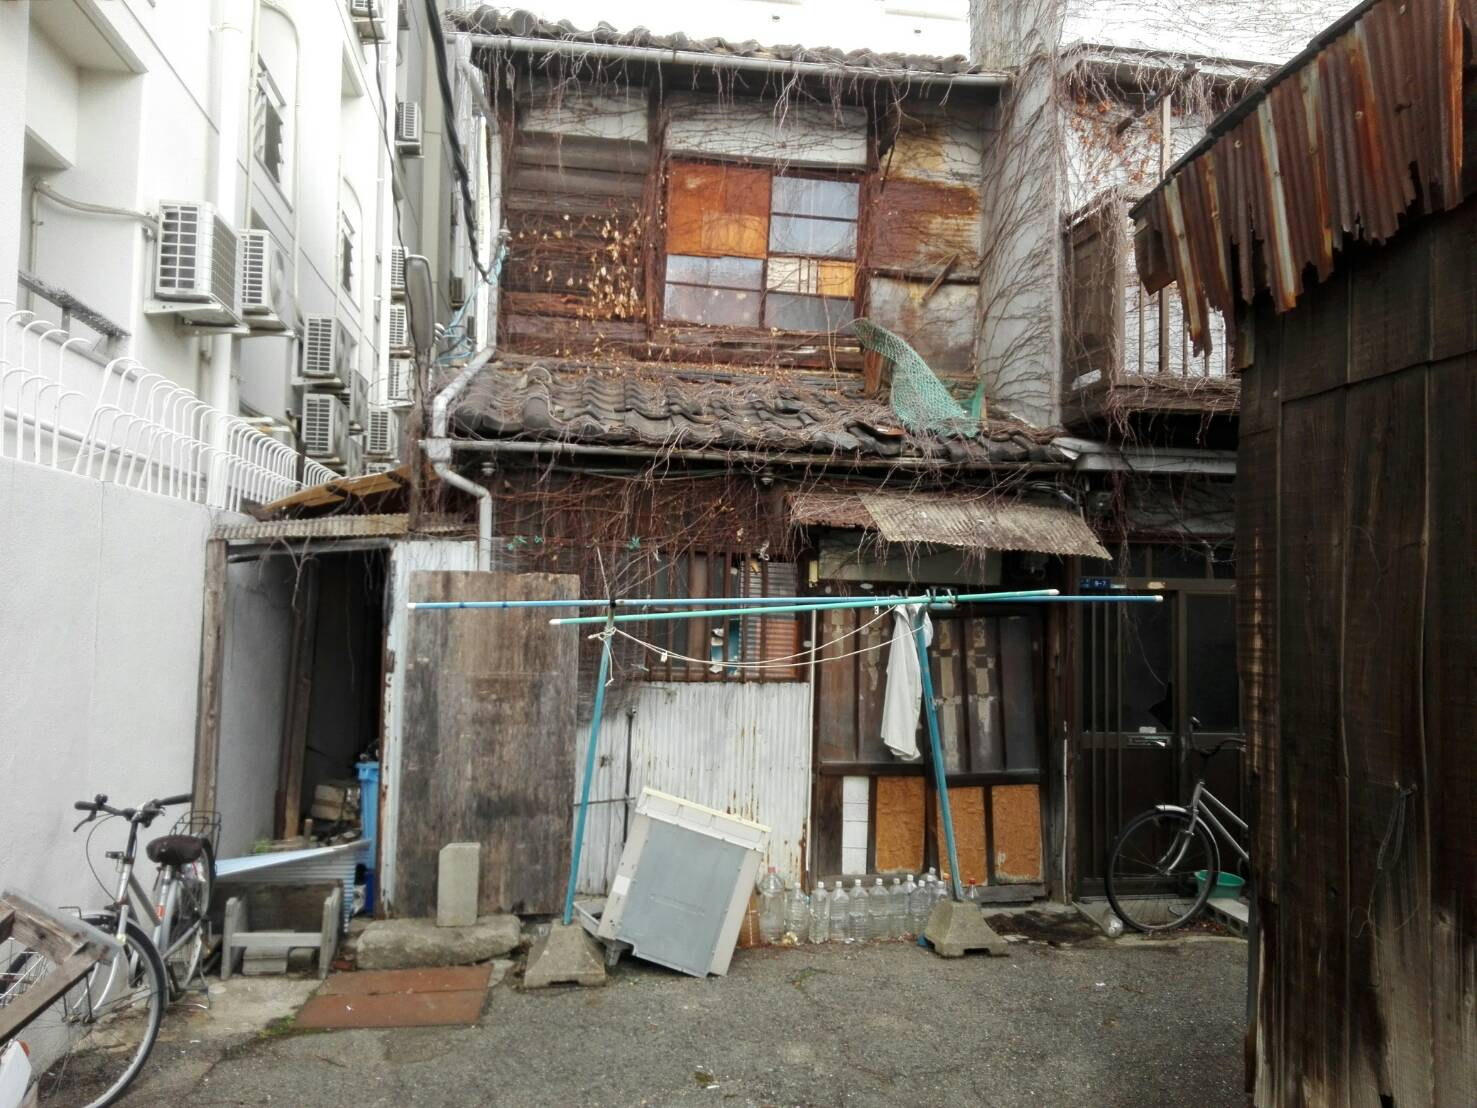 This is in the ghetto of Osaka. Not a dangerous area at all, but a neigbourhood in a state of disrepair!